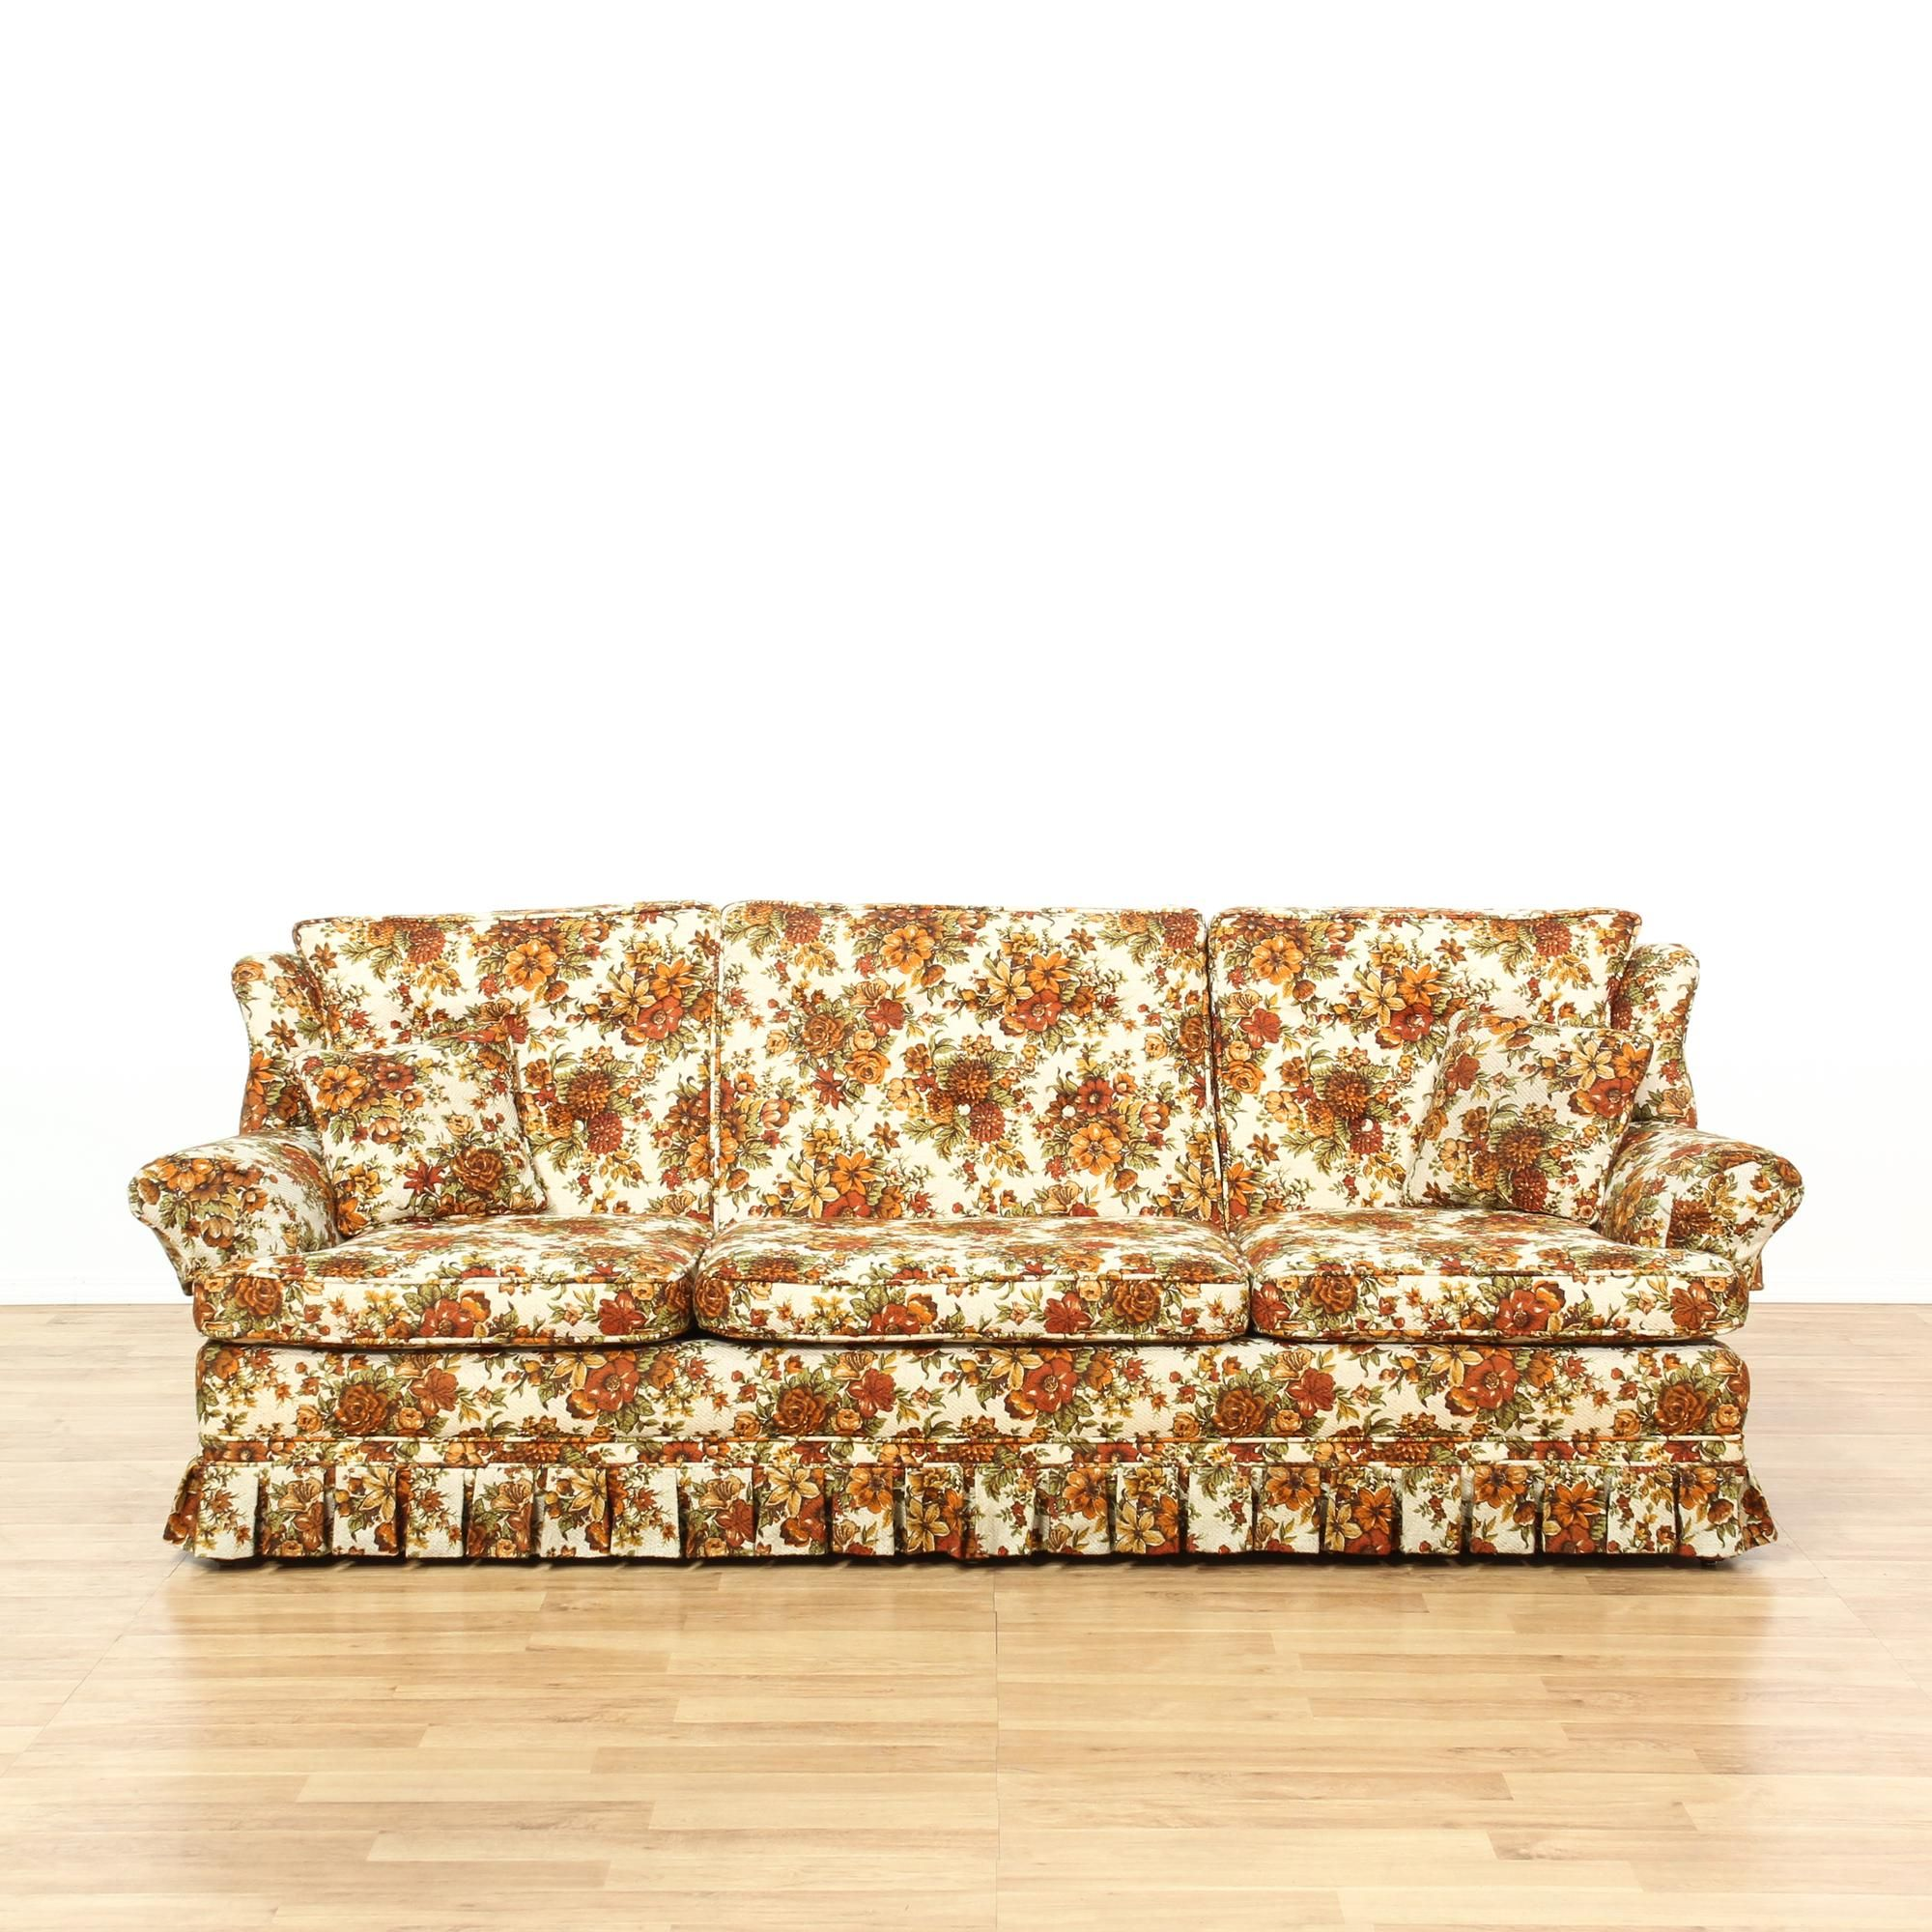 This Sofa Is Upholstered In An Orange Floral Pattern. This Traditional  Style Couch Has Matching Throw Pillows, A Skirted Base, And Plush Cushions.